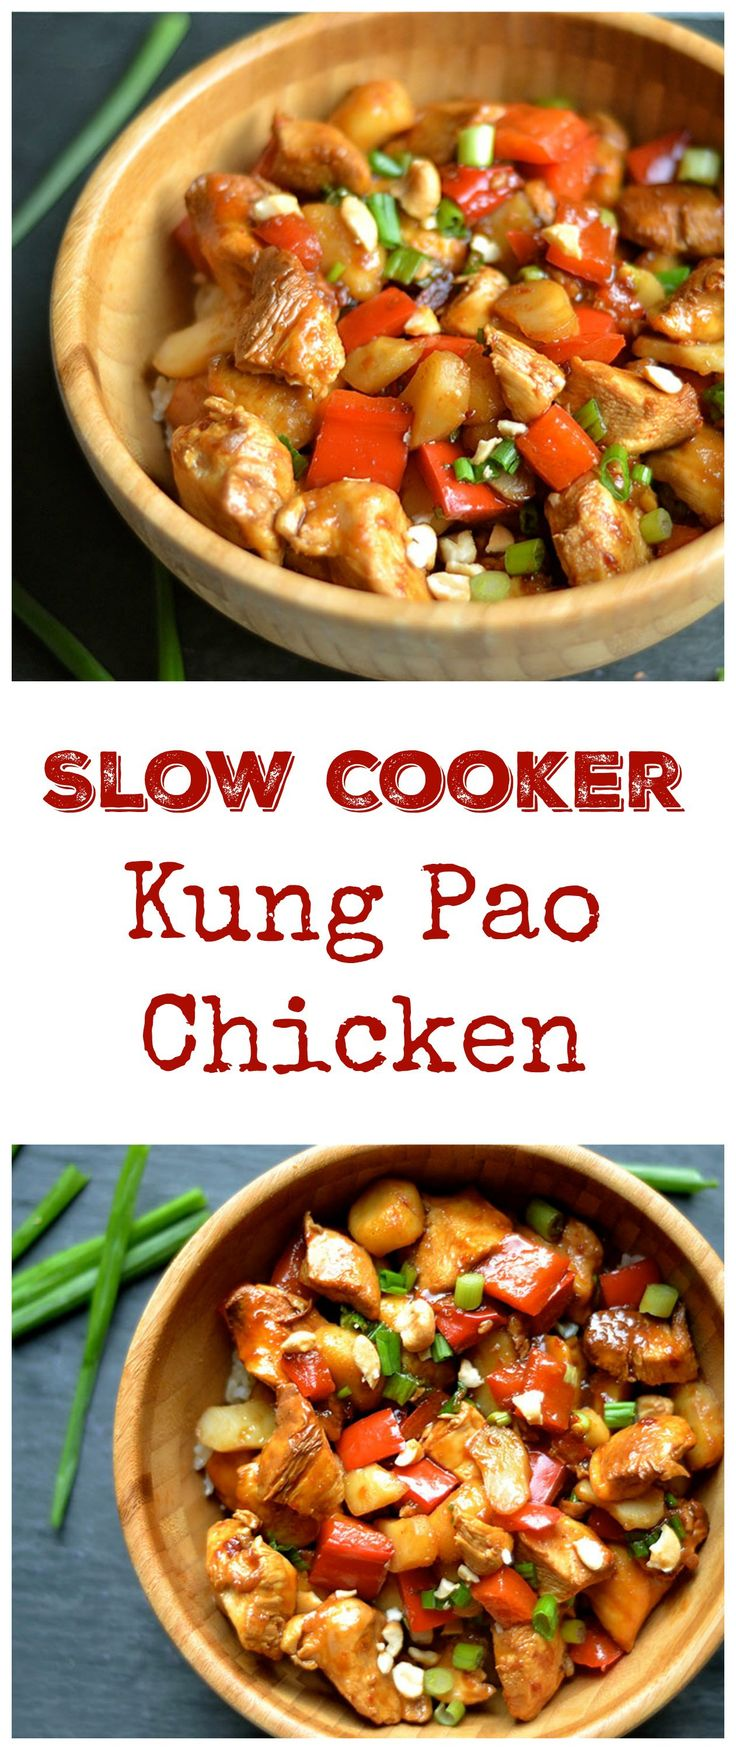 Slow Cooker Kung Pao Chicken Recipe Slow Cooker Recipes Slow Cooker Chicken Food Recipes